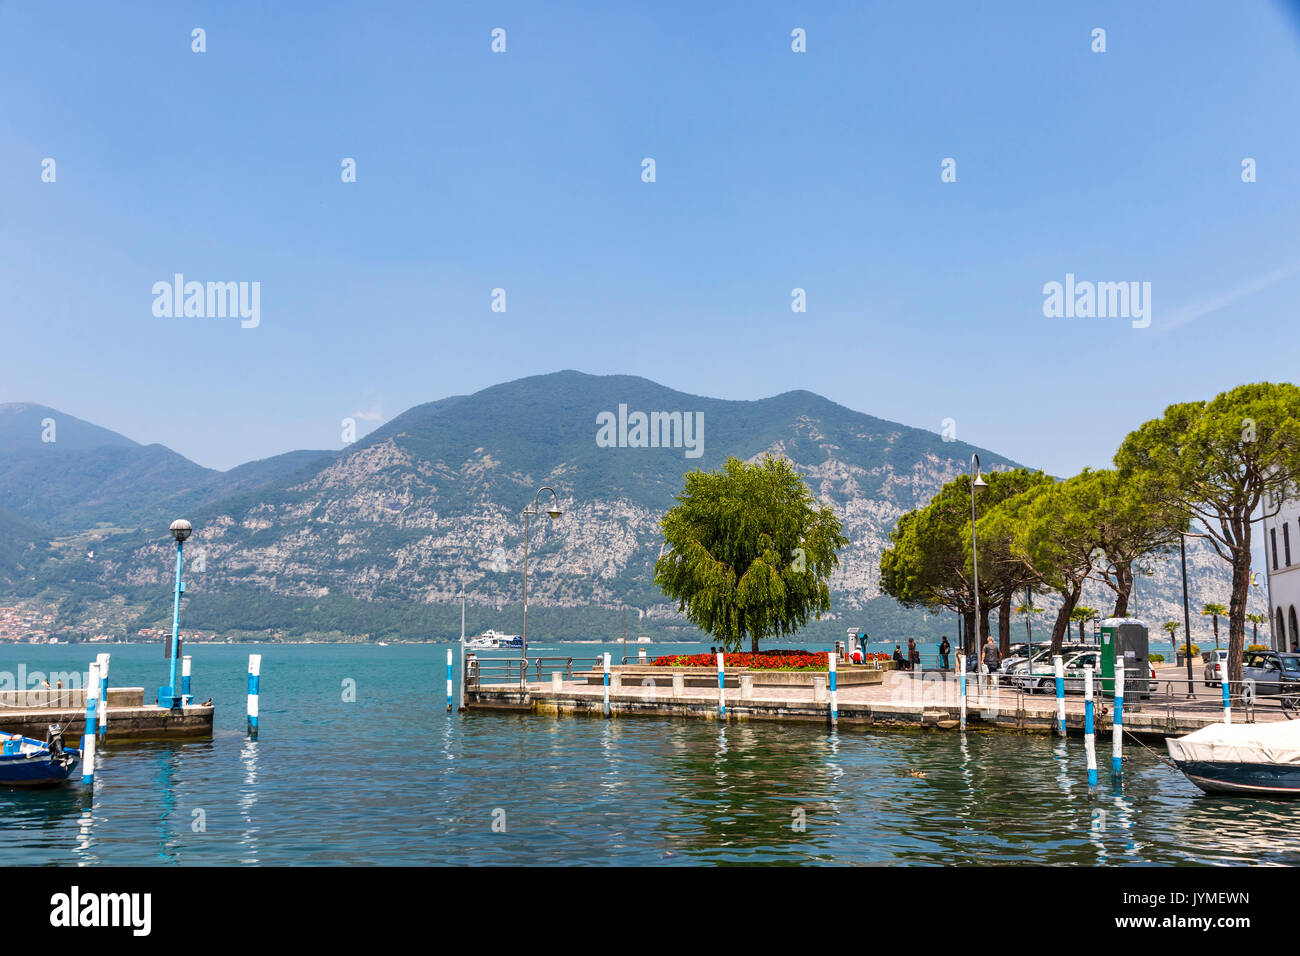 Iseo lake, Lombardy, Italy. Famous Italian resort. Lake Iseo (or Lago d'Iseo) is the 4th largest lake in Lombardy - Stock Image